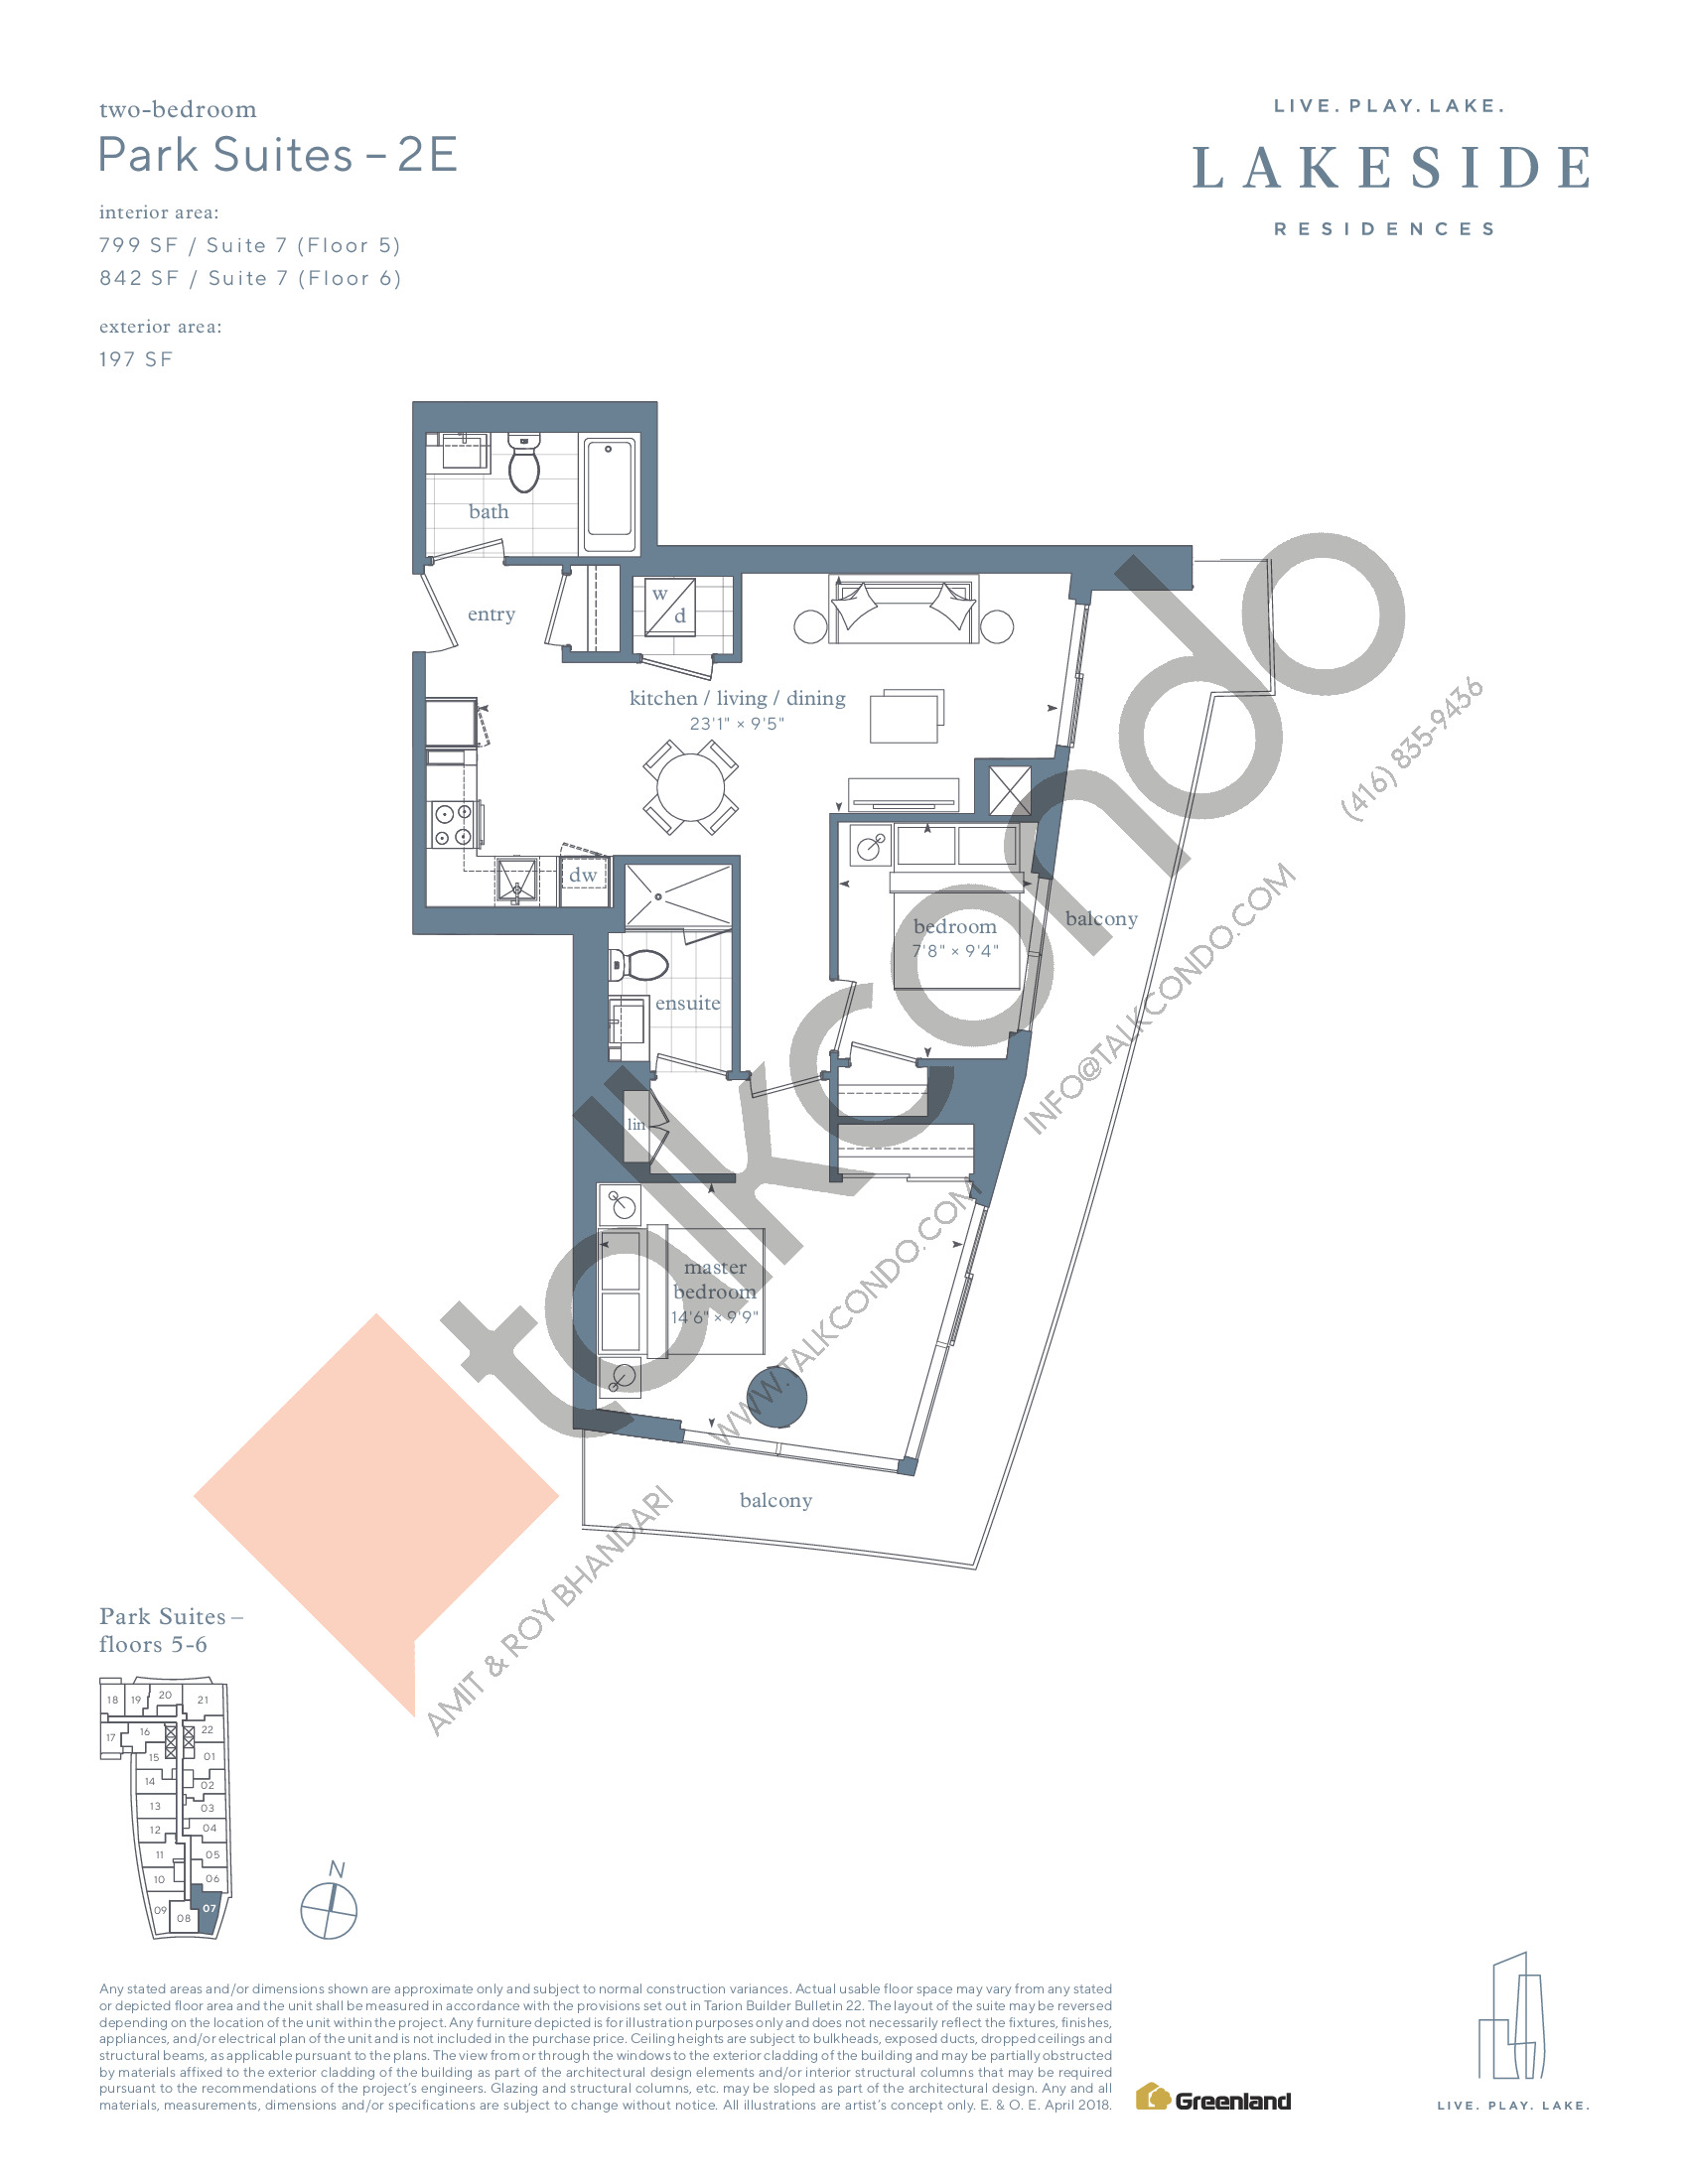 Park Suites - 2E Floor Plan at Lakeside Residences - 842 sq.ft